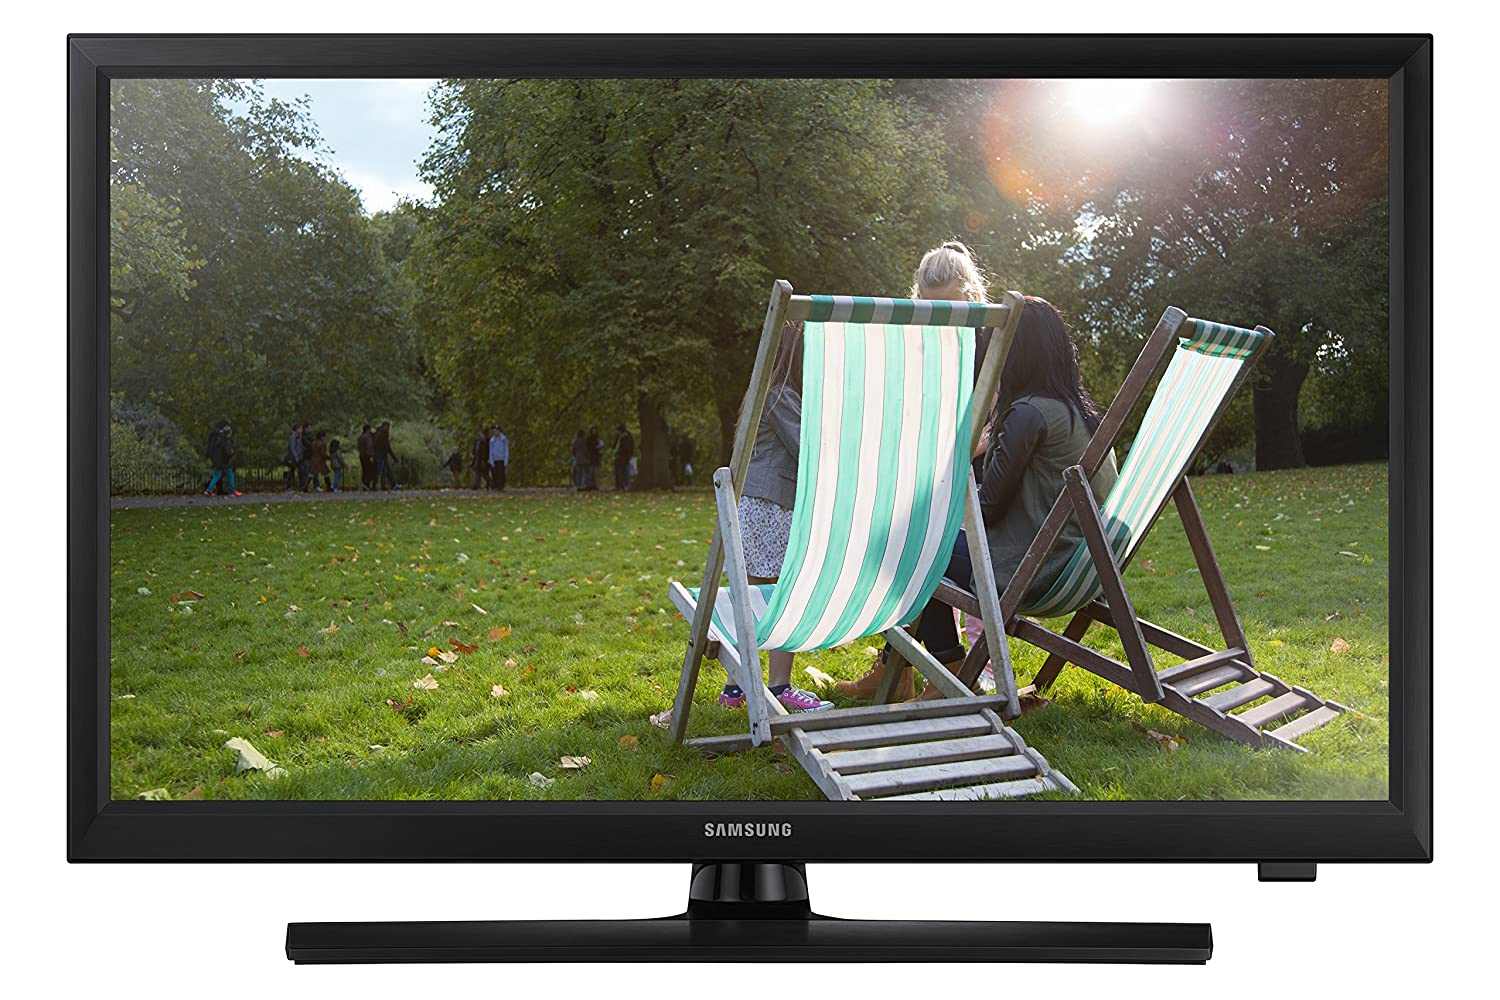 Amazon.com: Samsung TE310 Series 23.6 Inch Screen LED Lit Monitor/Television:  Computers U0026 Accessories